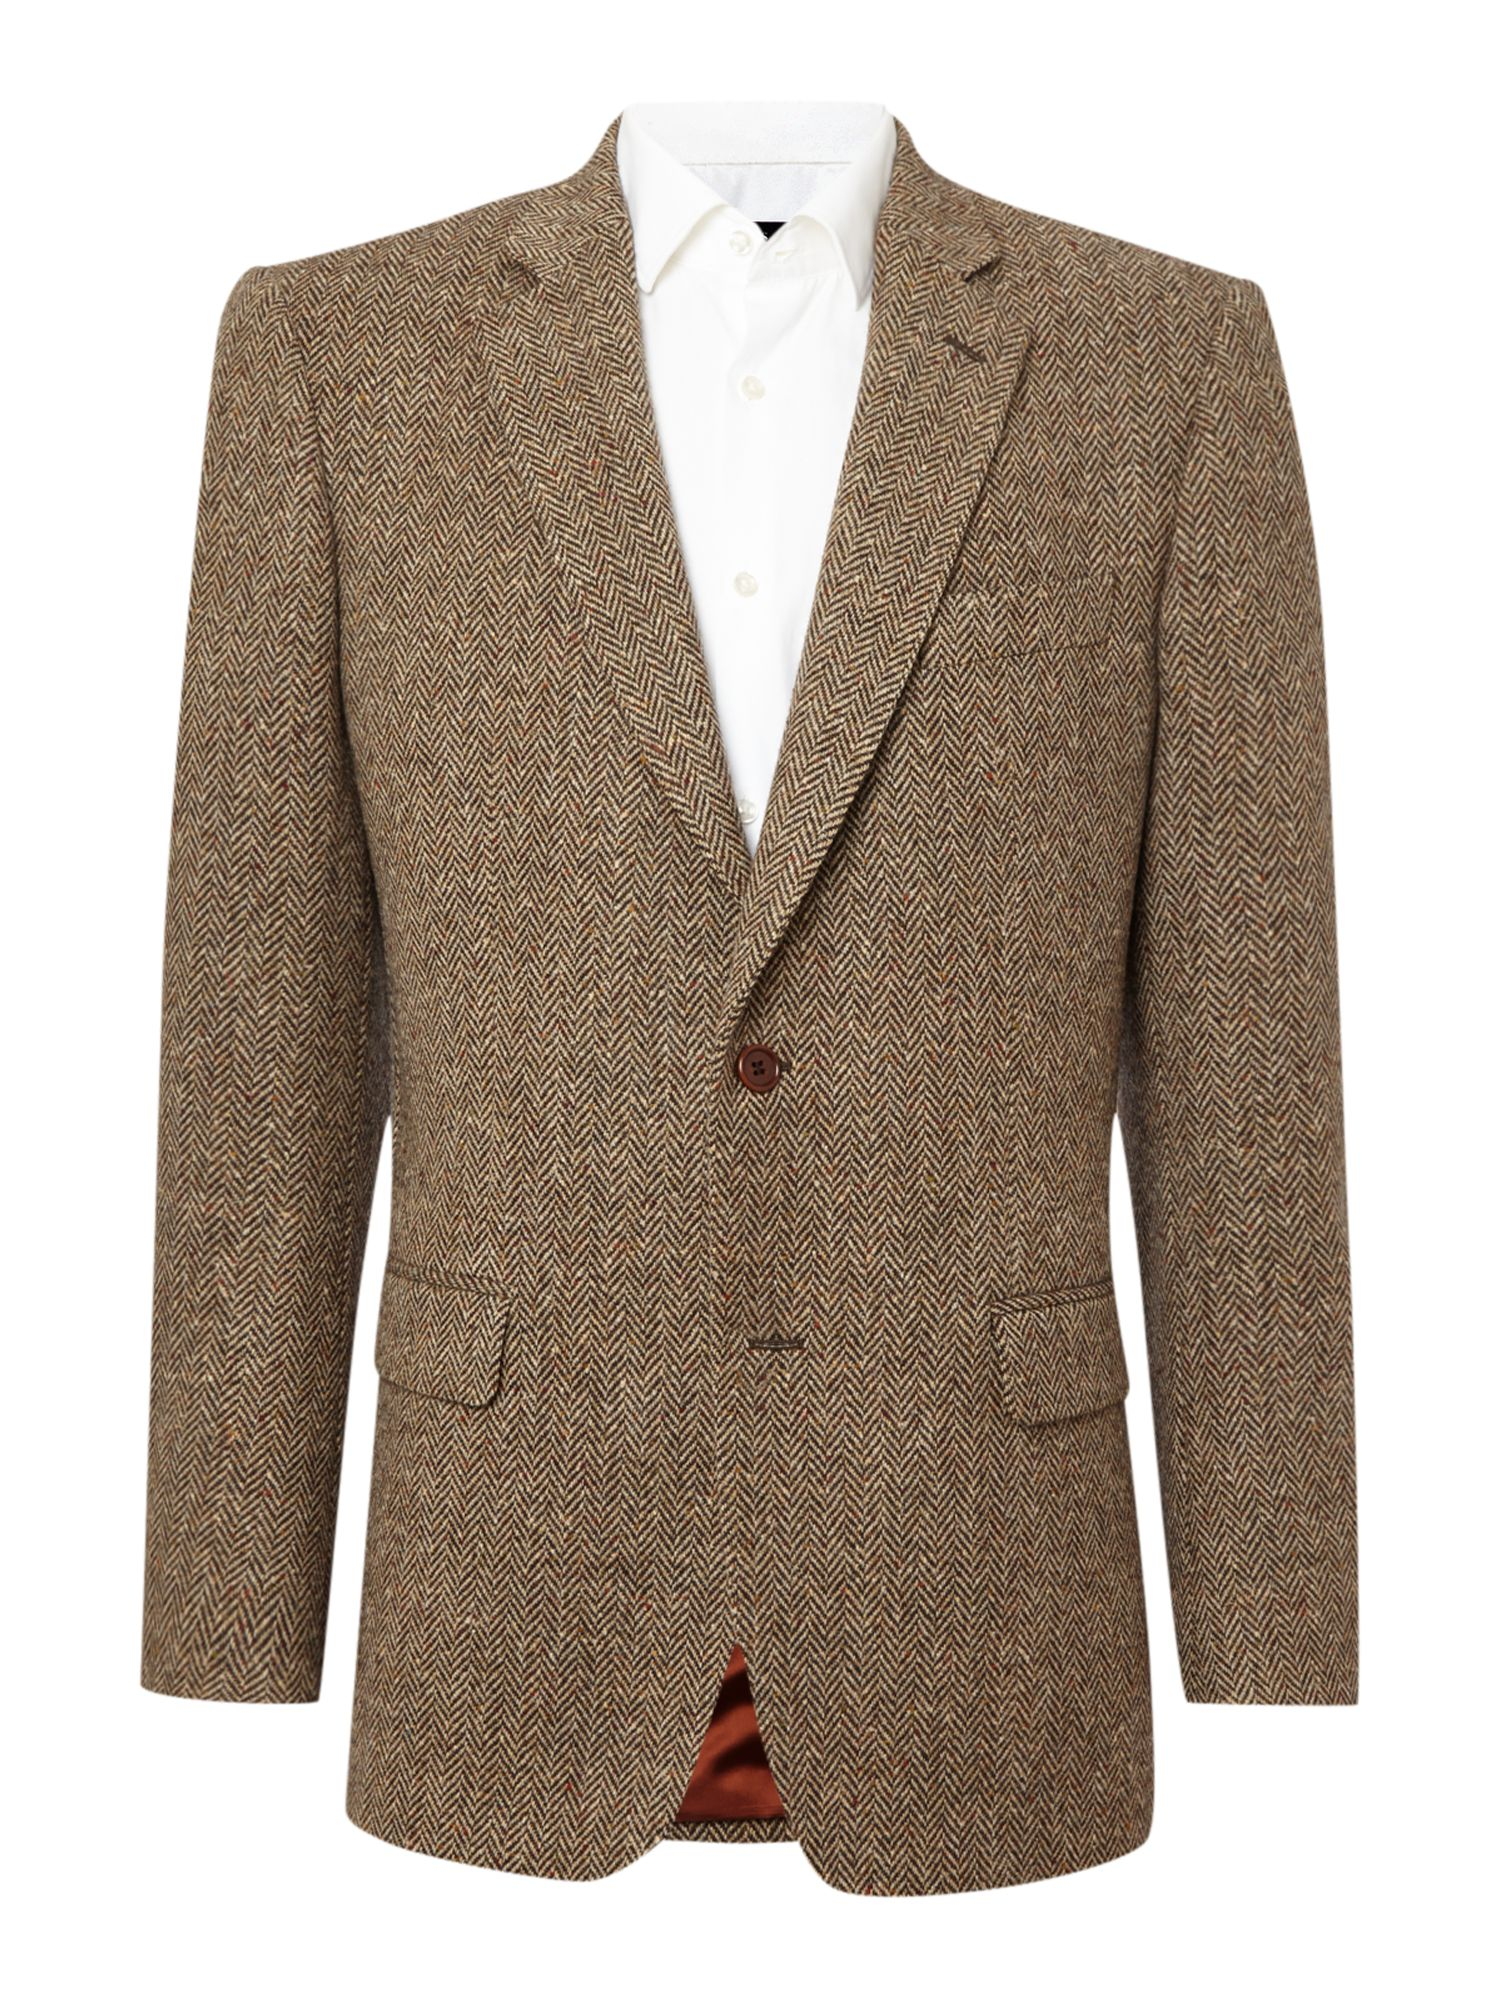 Shopping for Cheap Tweed Suits at YIEELACOO Haute couture Store and more from winter winter,suit suit,suits women winter,skirt set,business set,tweed skirt suit on yageimer.ga,the Leading Trading Marketplace from China.